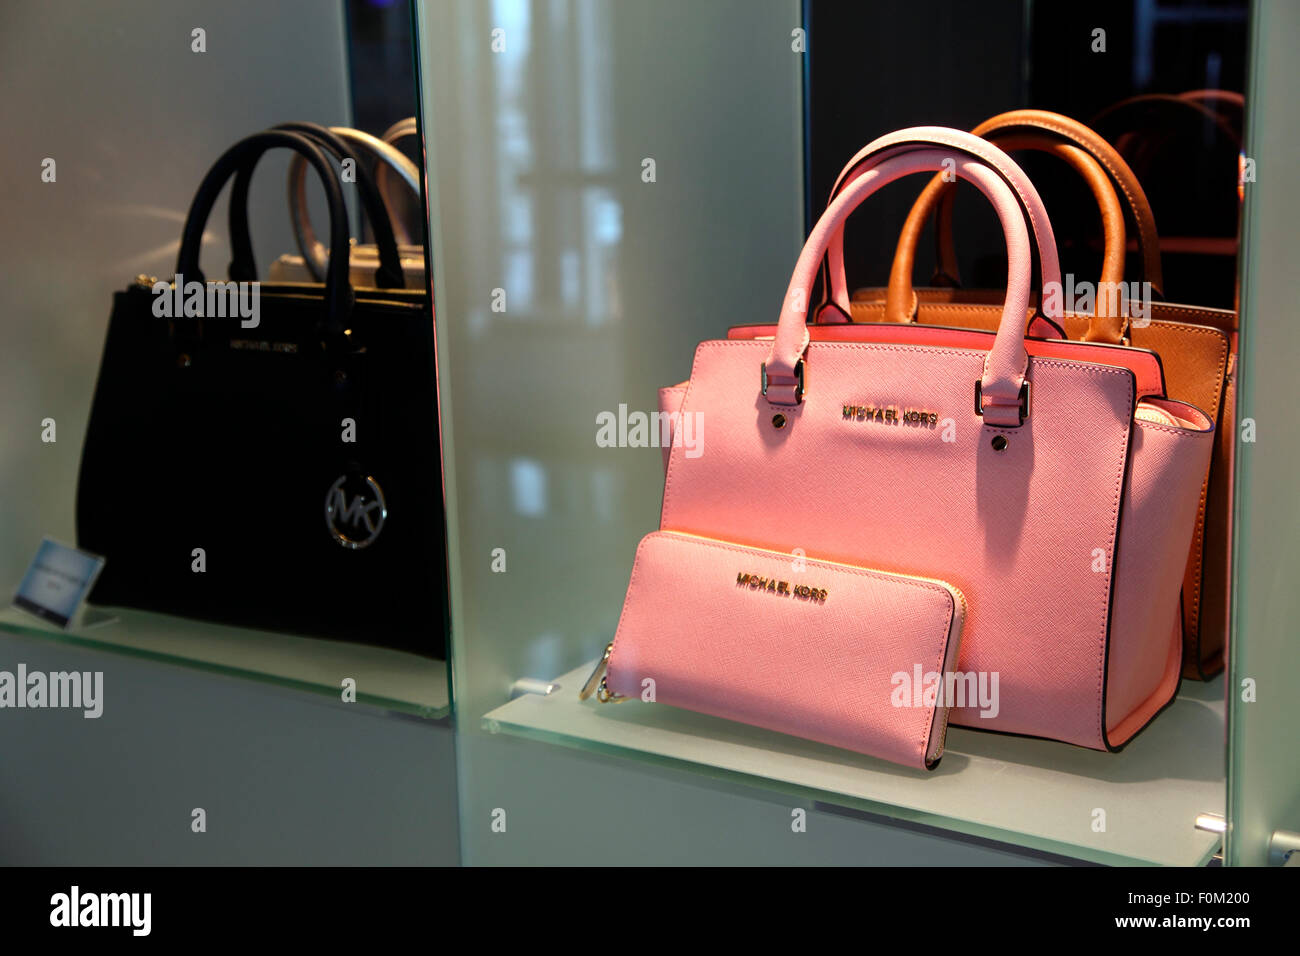 601b8d75c8 Michael Kors handbags on sale aboard MV Celebrity Silhouette Stock ...